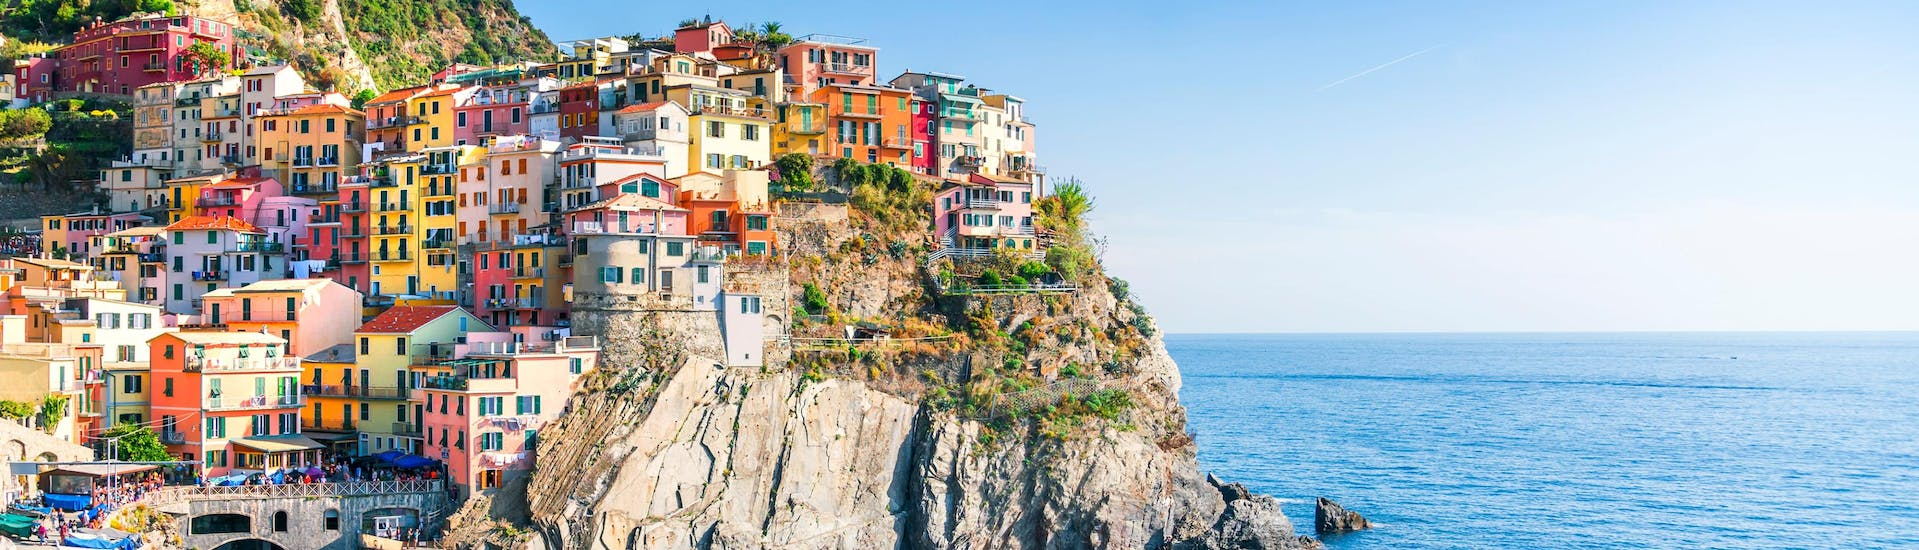 An image of the picturesque little village of Manarola perched on top of the cliffs, one of the sights afforded to those who go on a boat trip along the Cinque Terre coast.